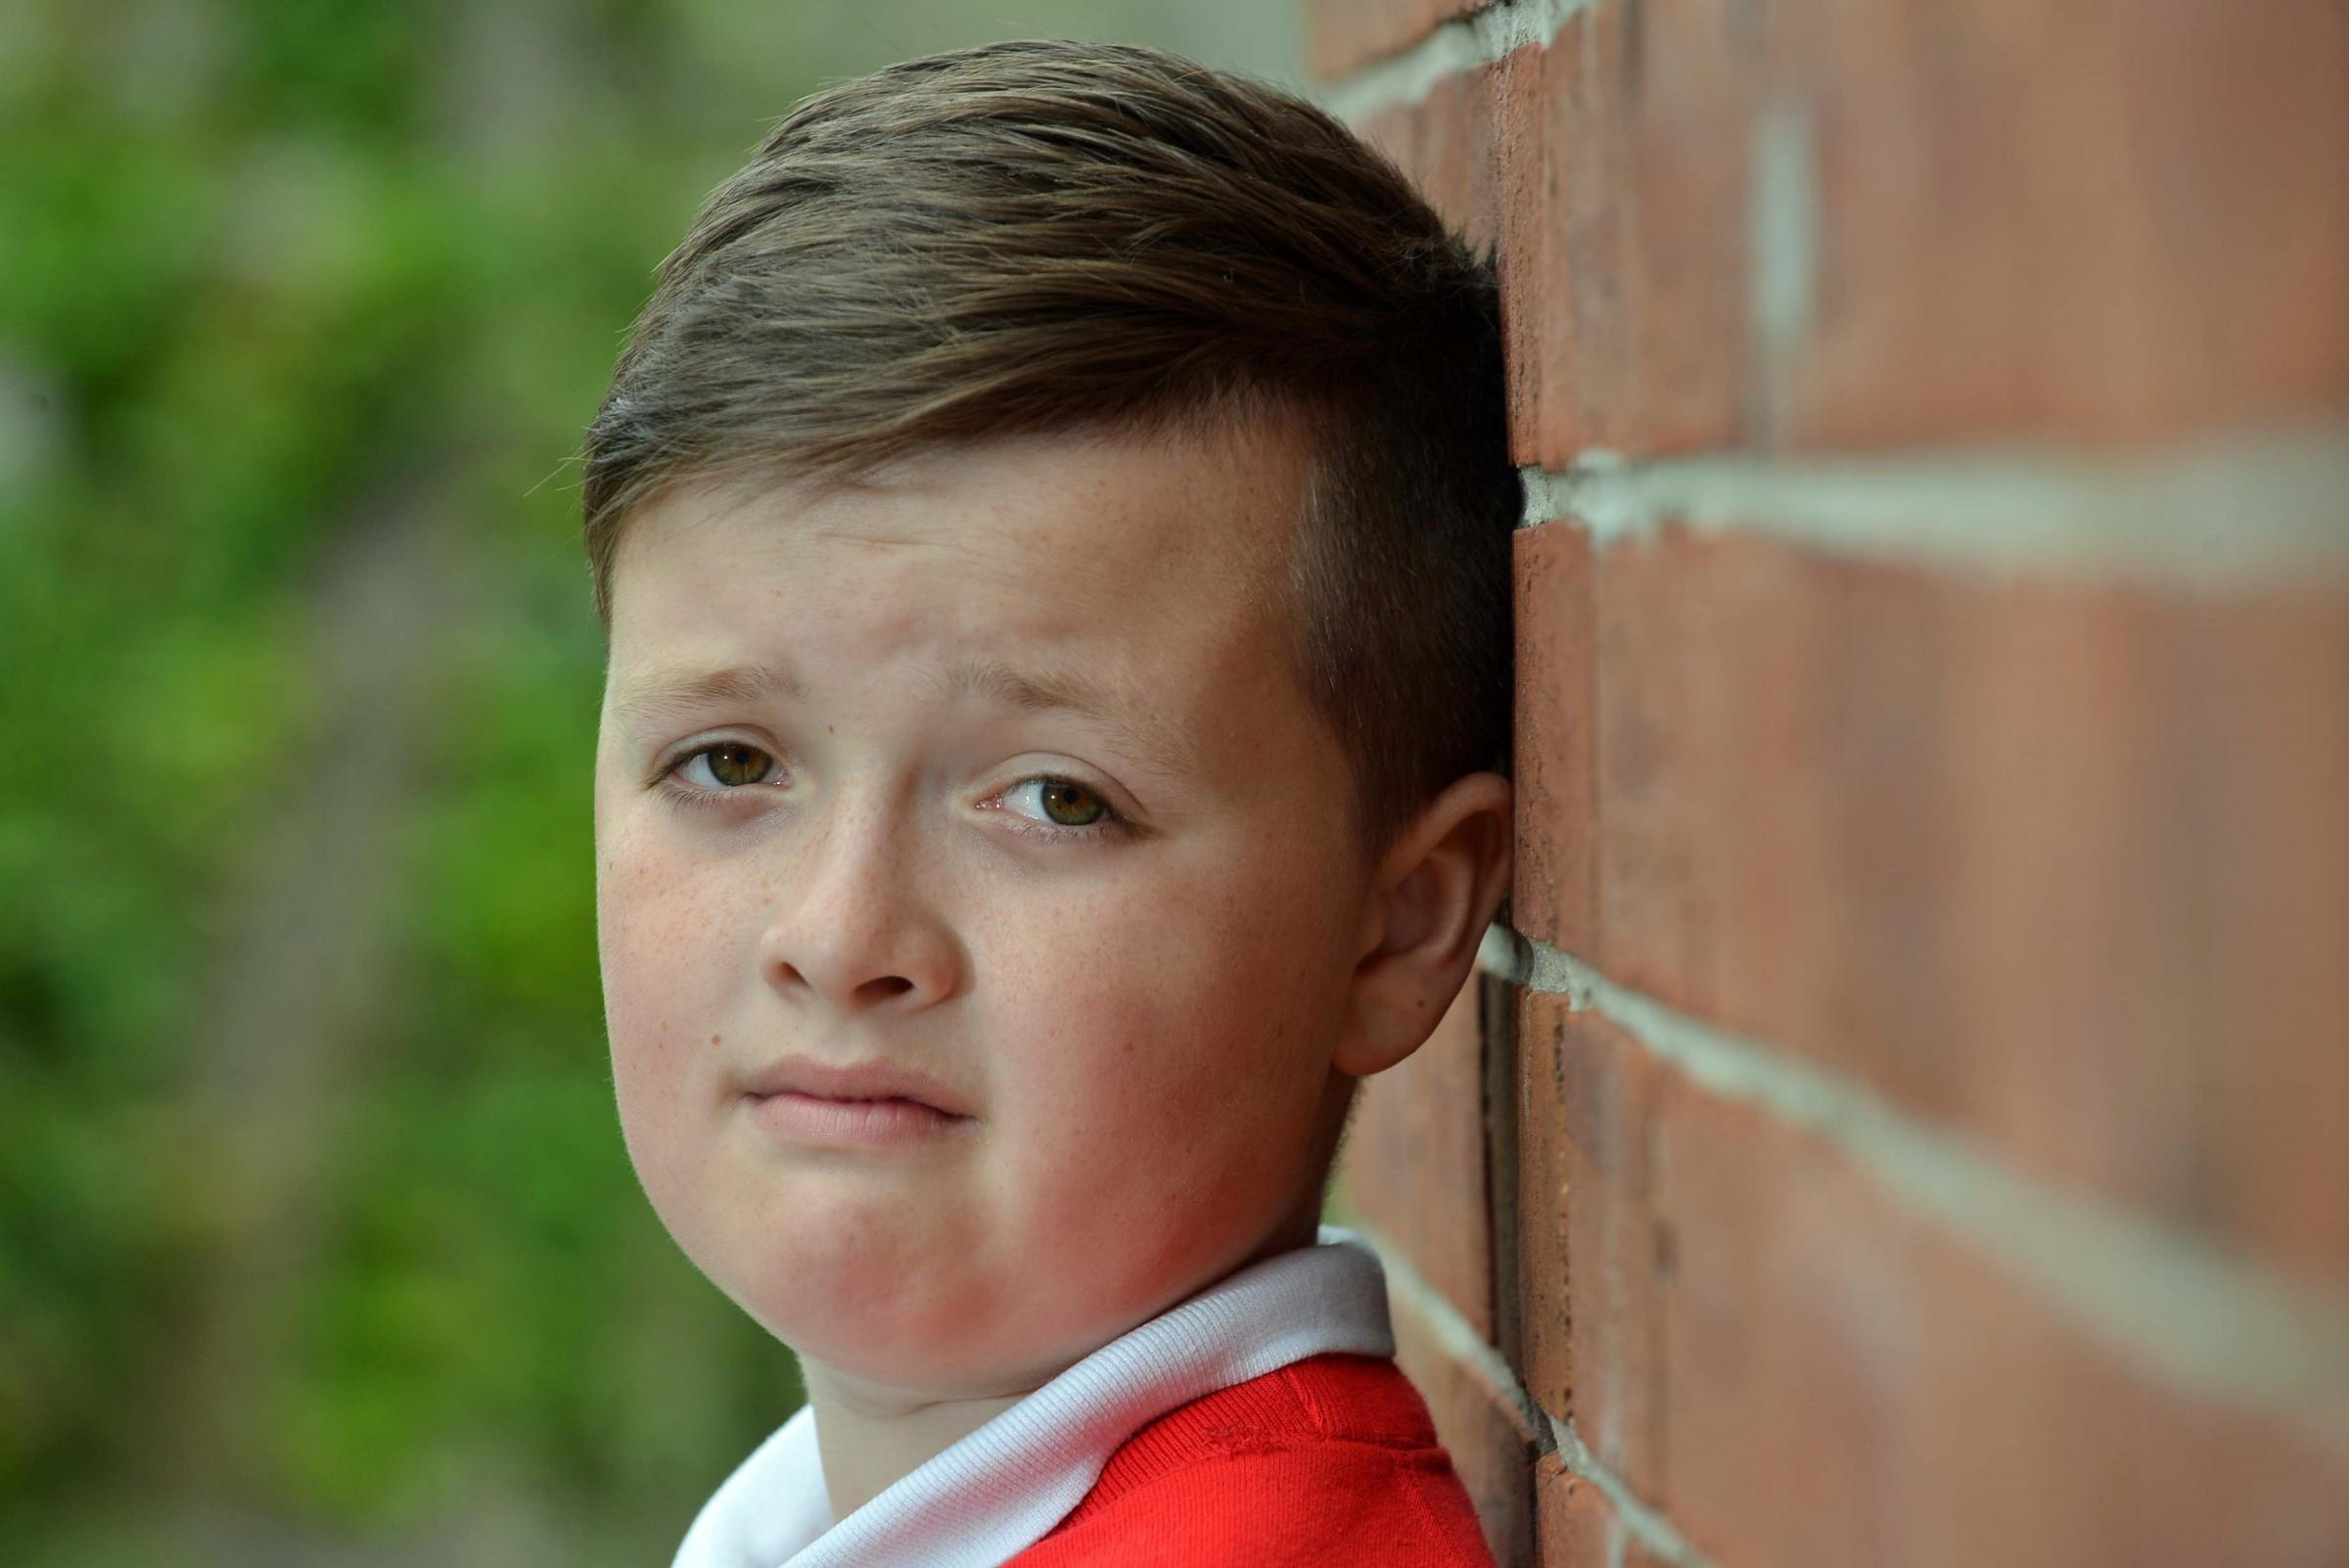 Mum's fury as son misses out on school trip